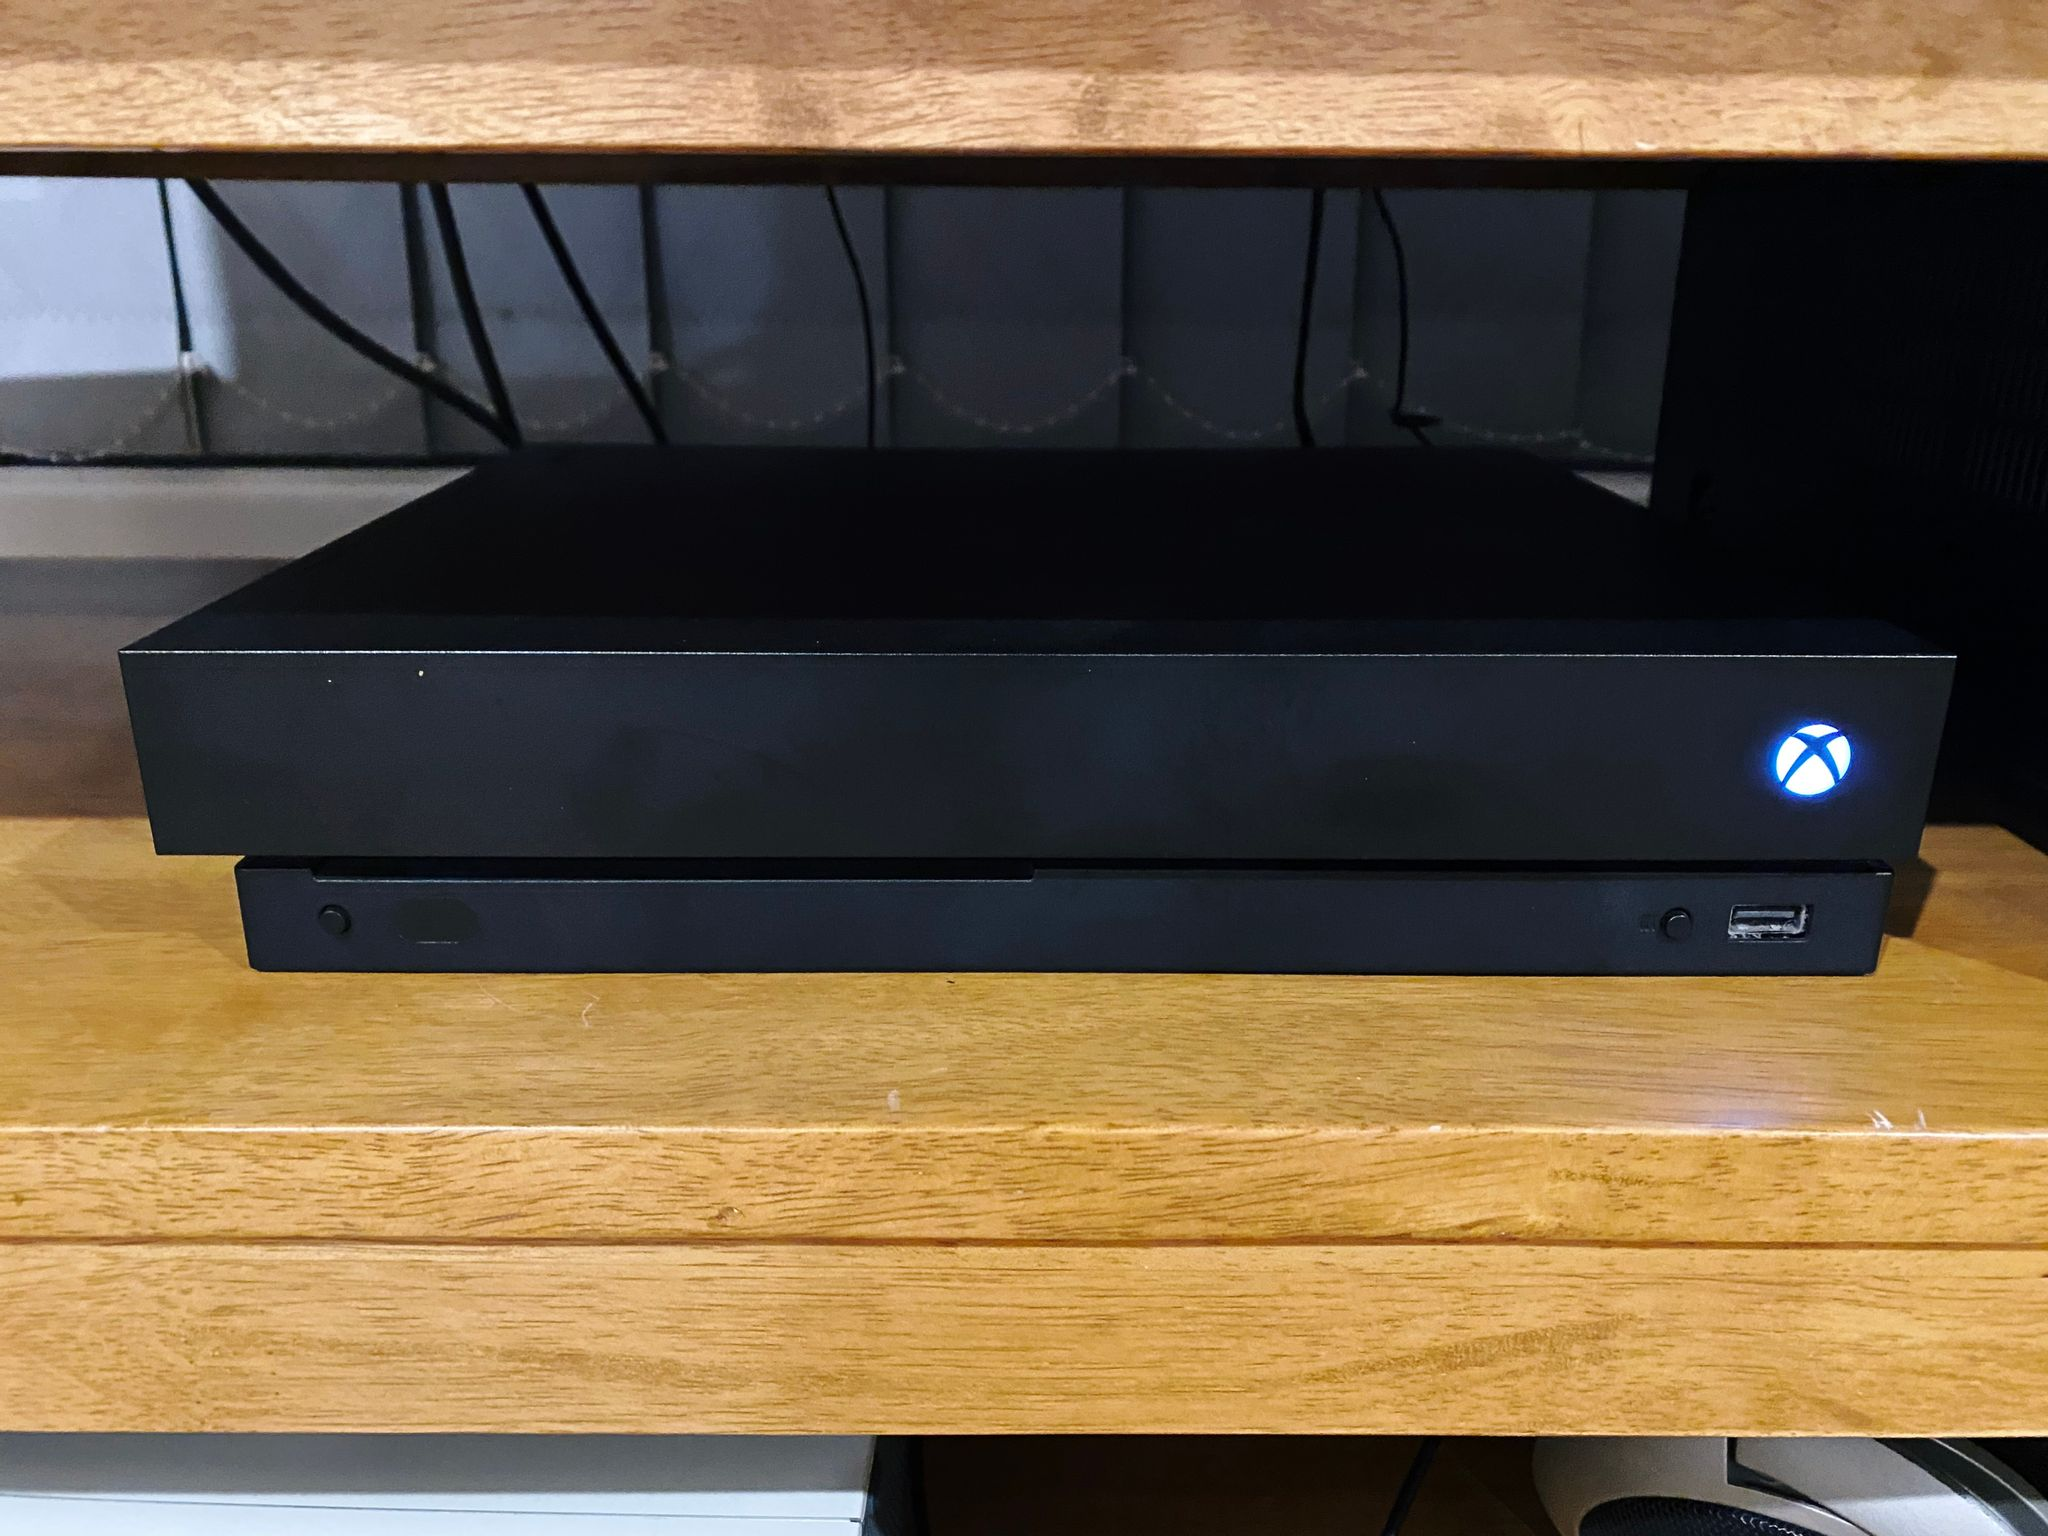 A photo of an Xbox One X sitting on a wooden shelf.